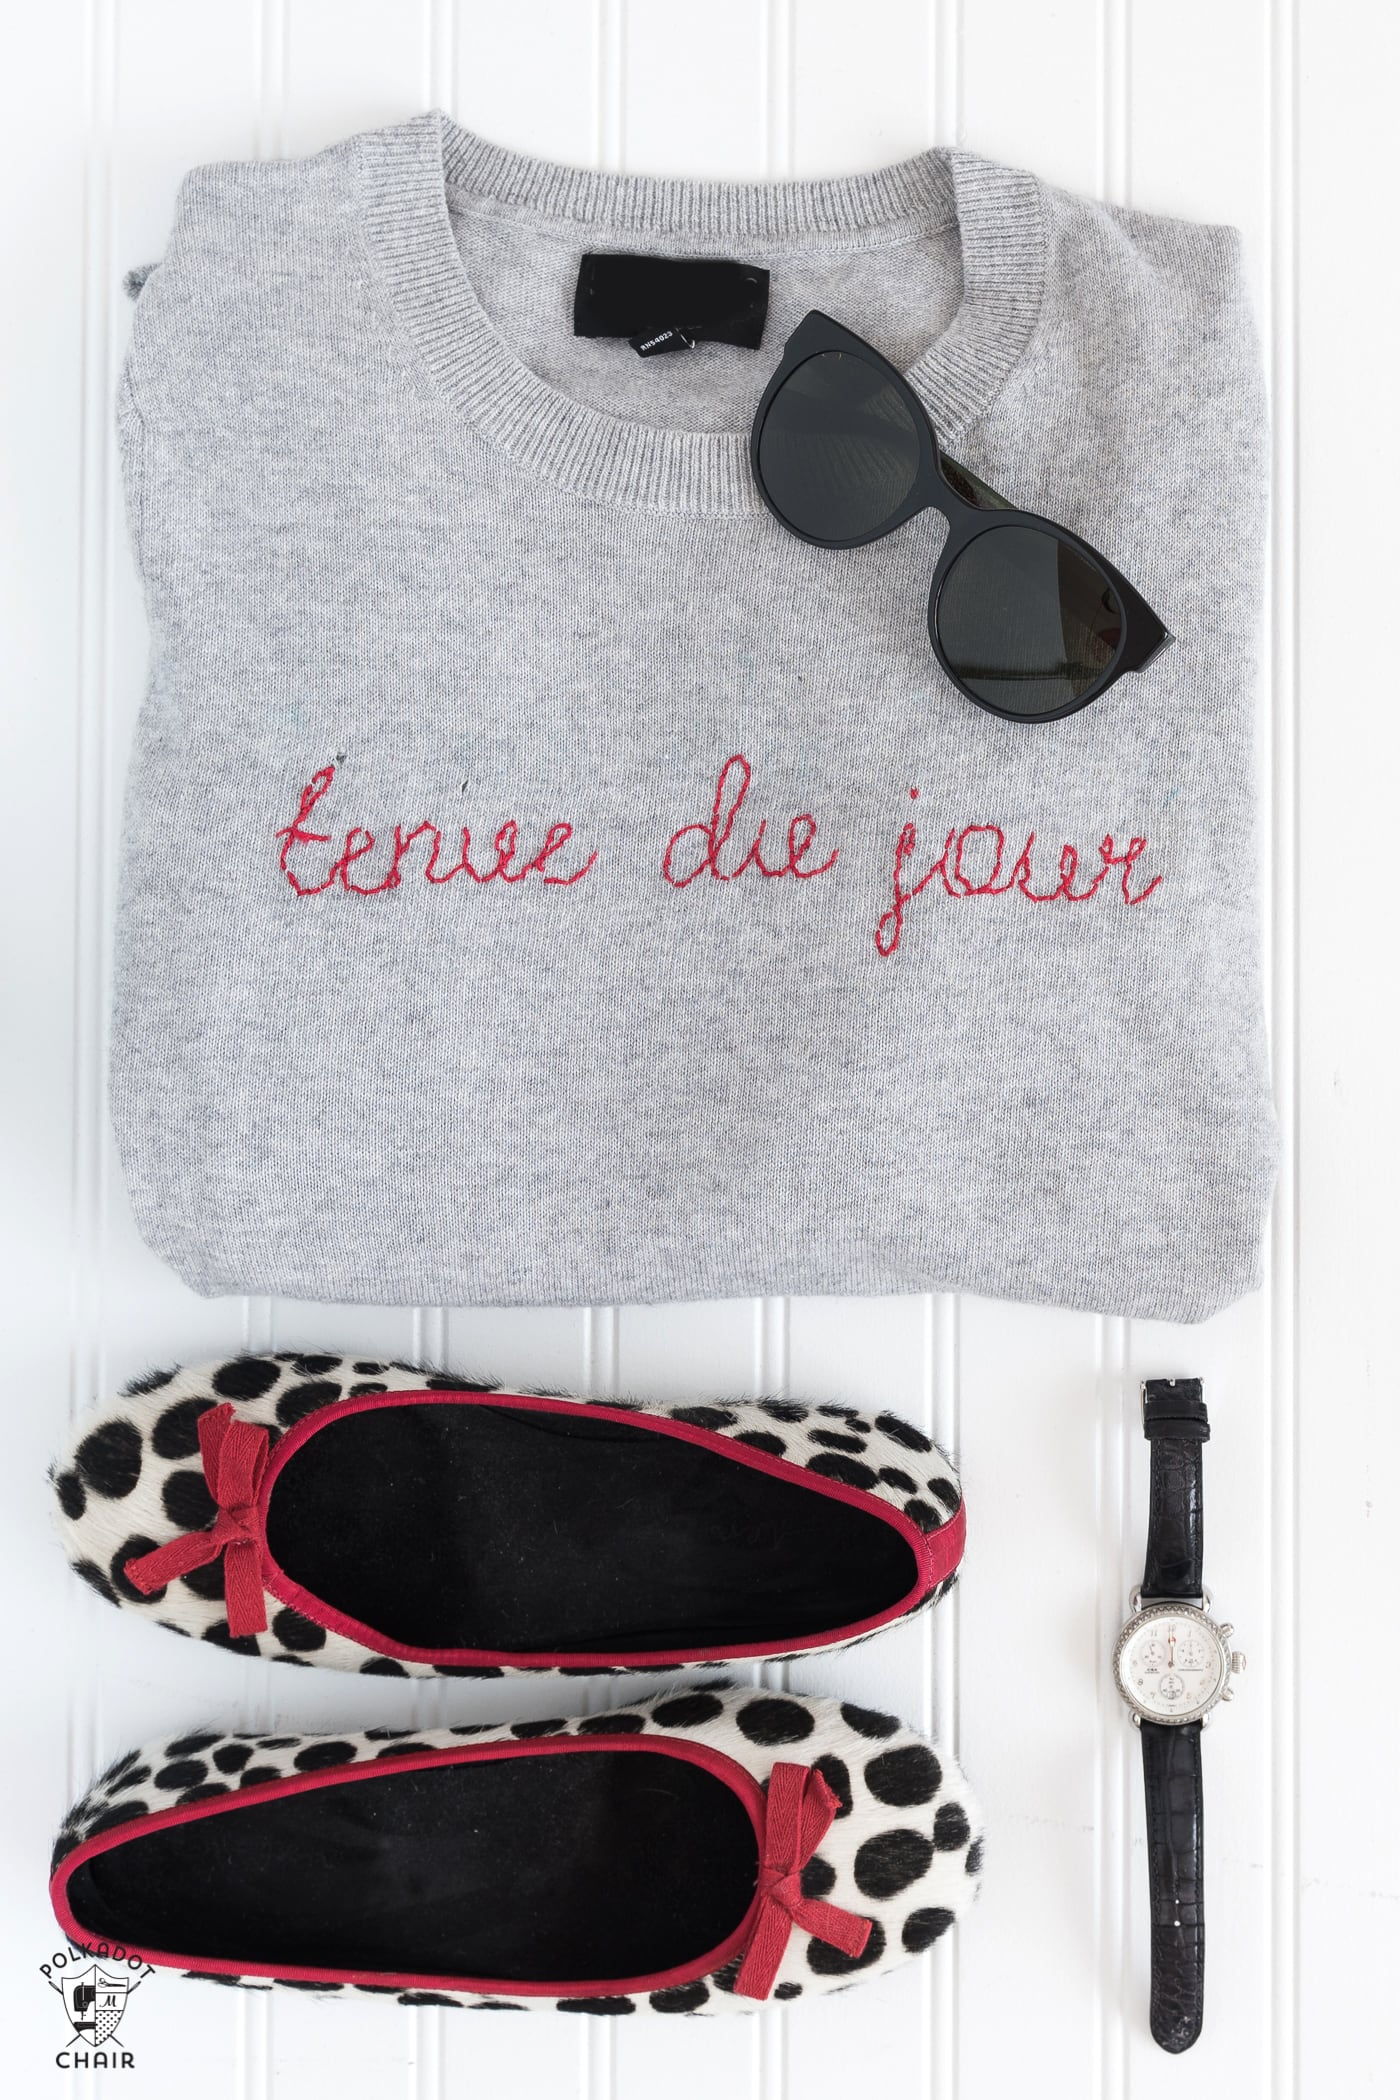 Learn how to make a DIY Embroidered sweater with a fun french quote on it. Includes free embroidery pattern for the quote. A clever way to refashion an old sweater. #DIYEmbroidery #DIYFashion #embroideredsweater #tutorial